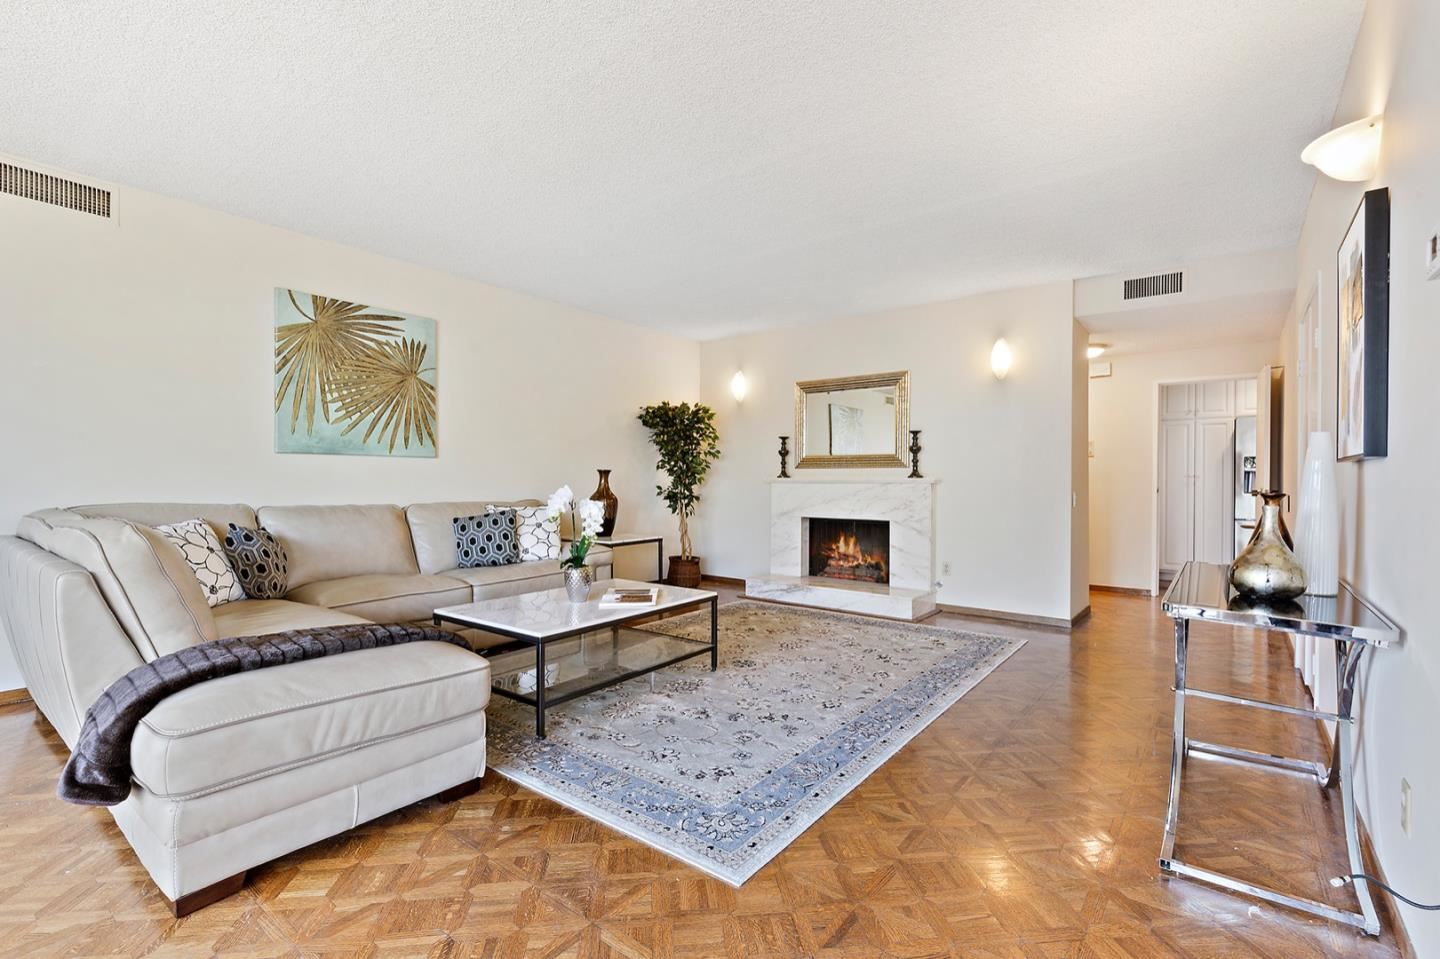 Photo for 50 Mounds Road #106, SAN MATEO, CA 94402 (MLS # ML81864213)